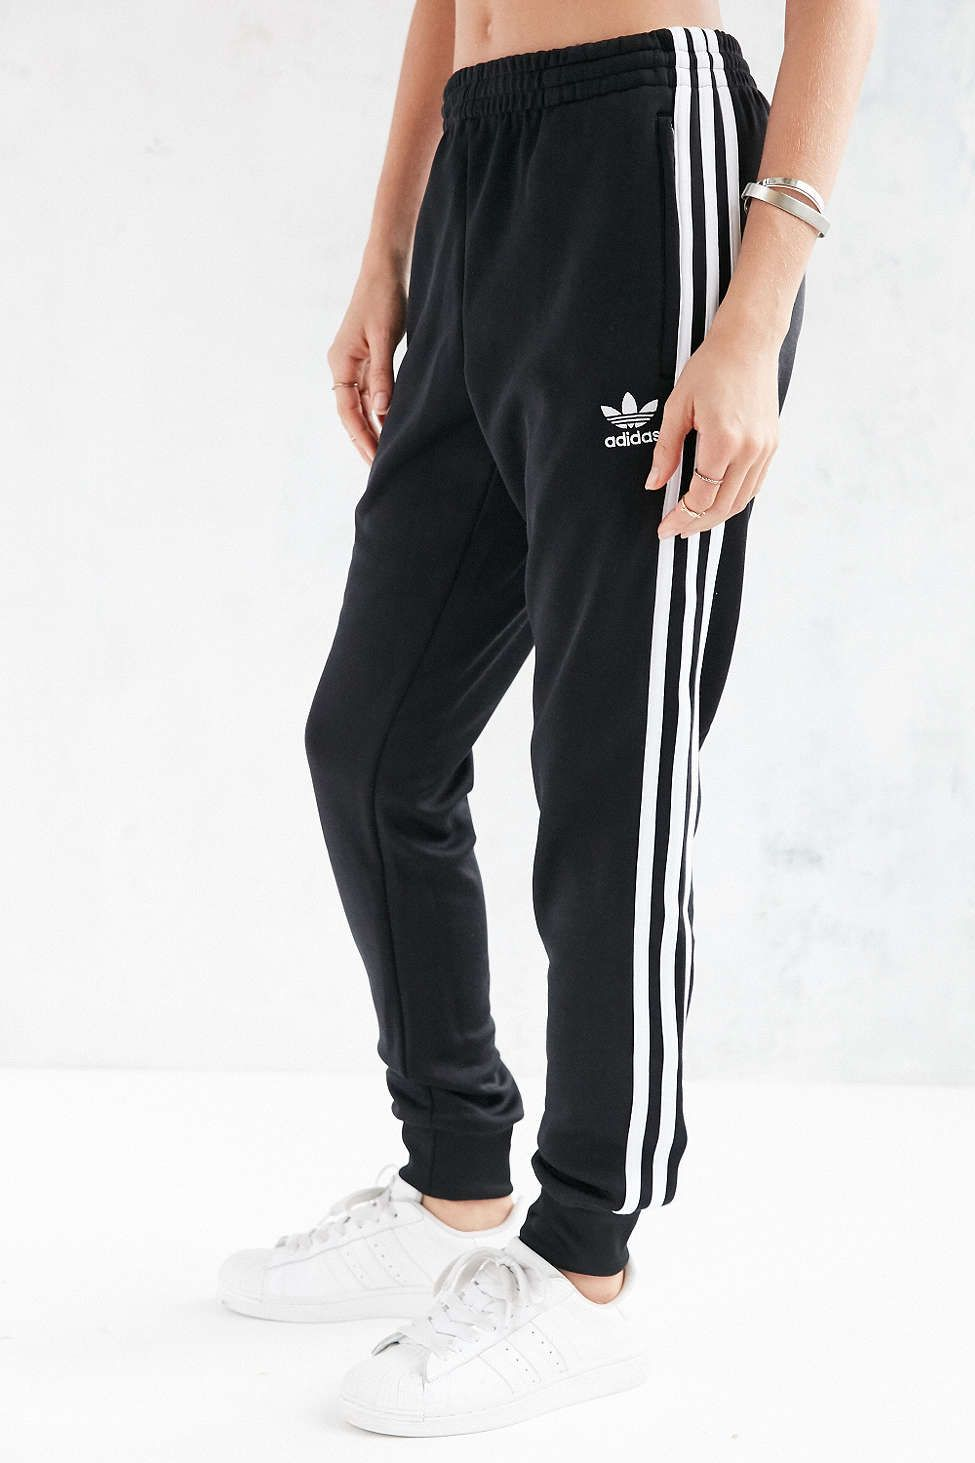 adidas superstar cuffed track pants black adidas stan smith velcro toddler